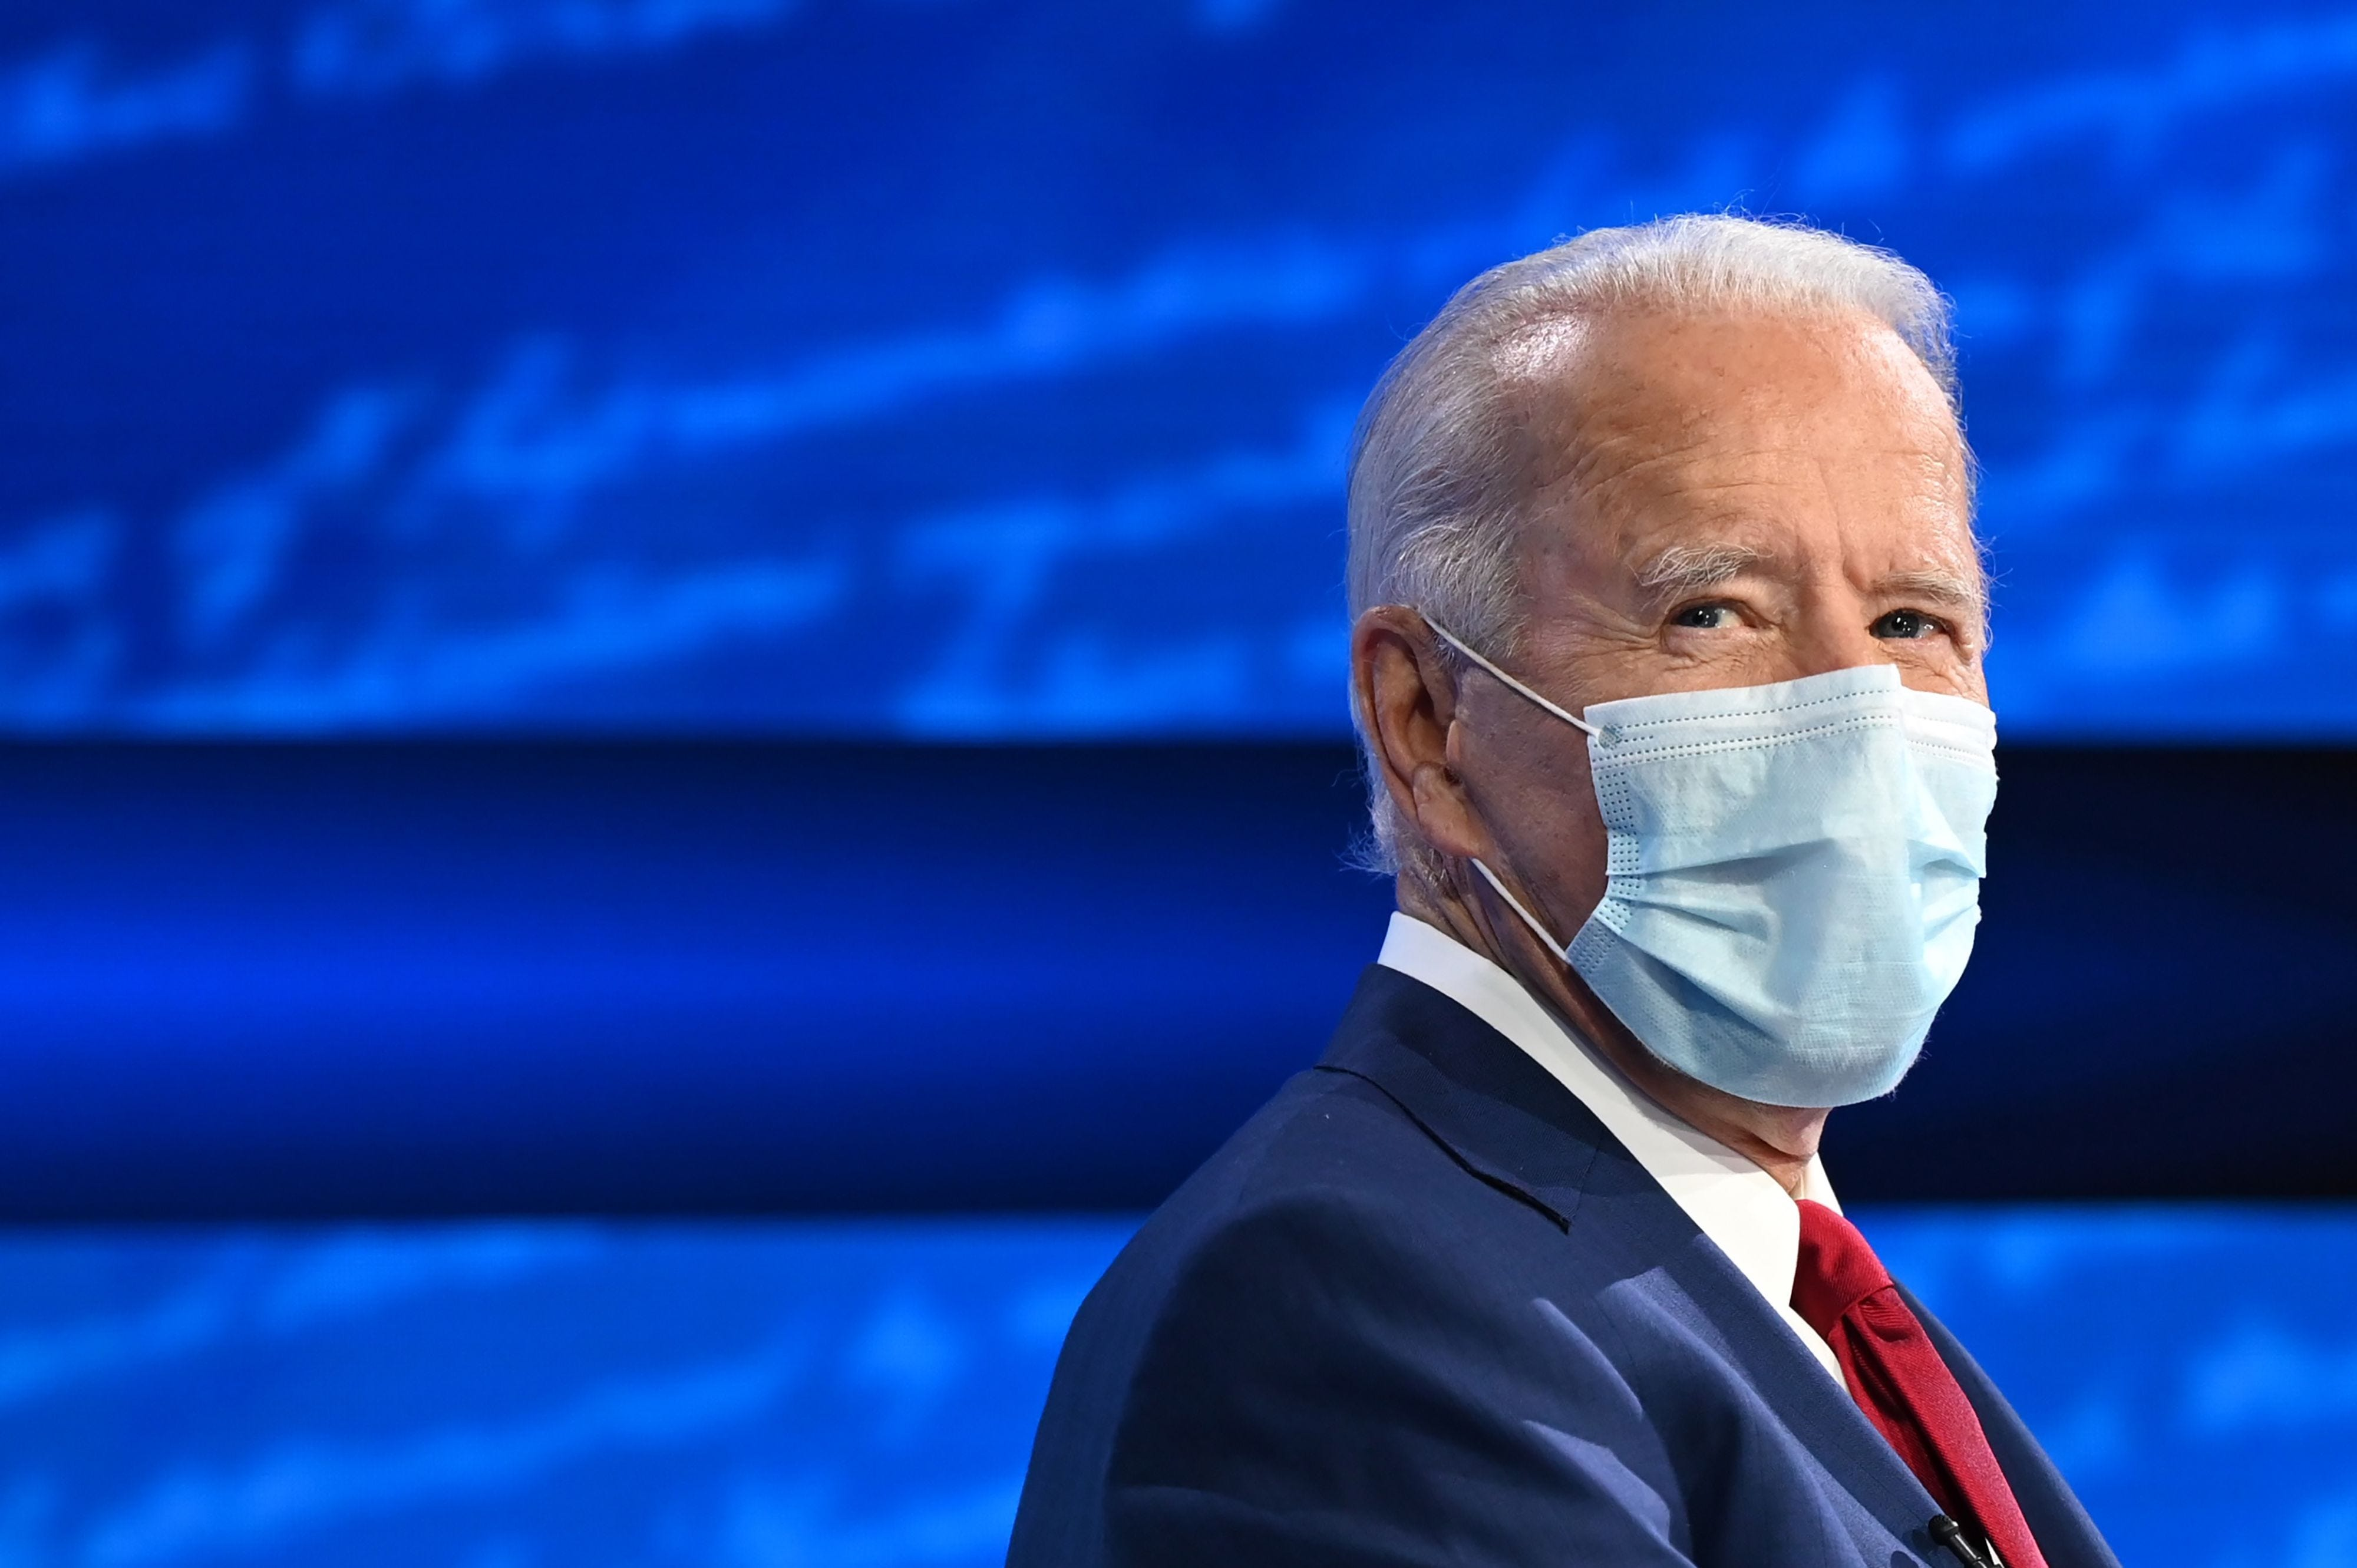 After town hall wraps up, Biden sticks around to take questions from audience